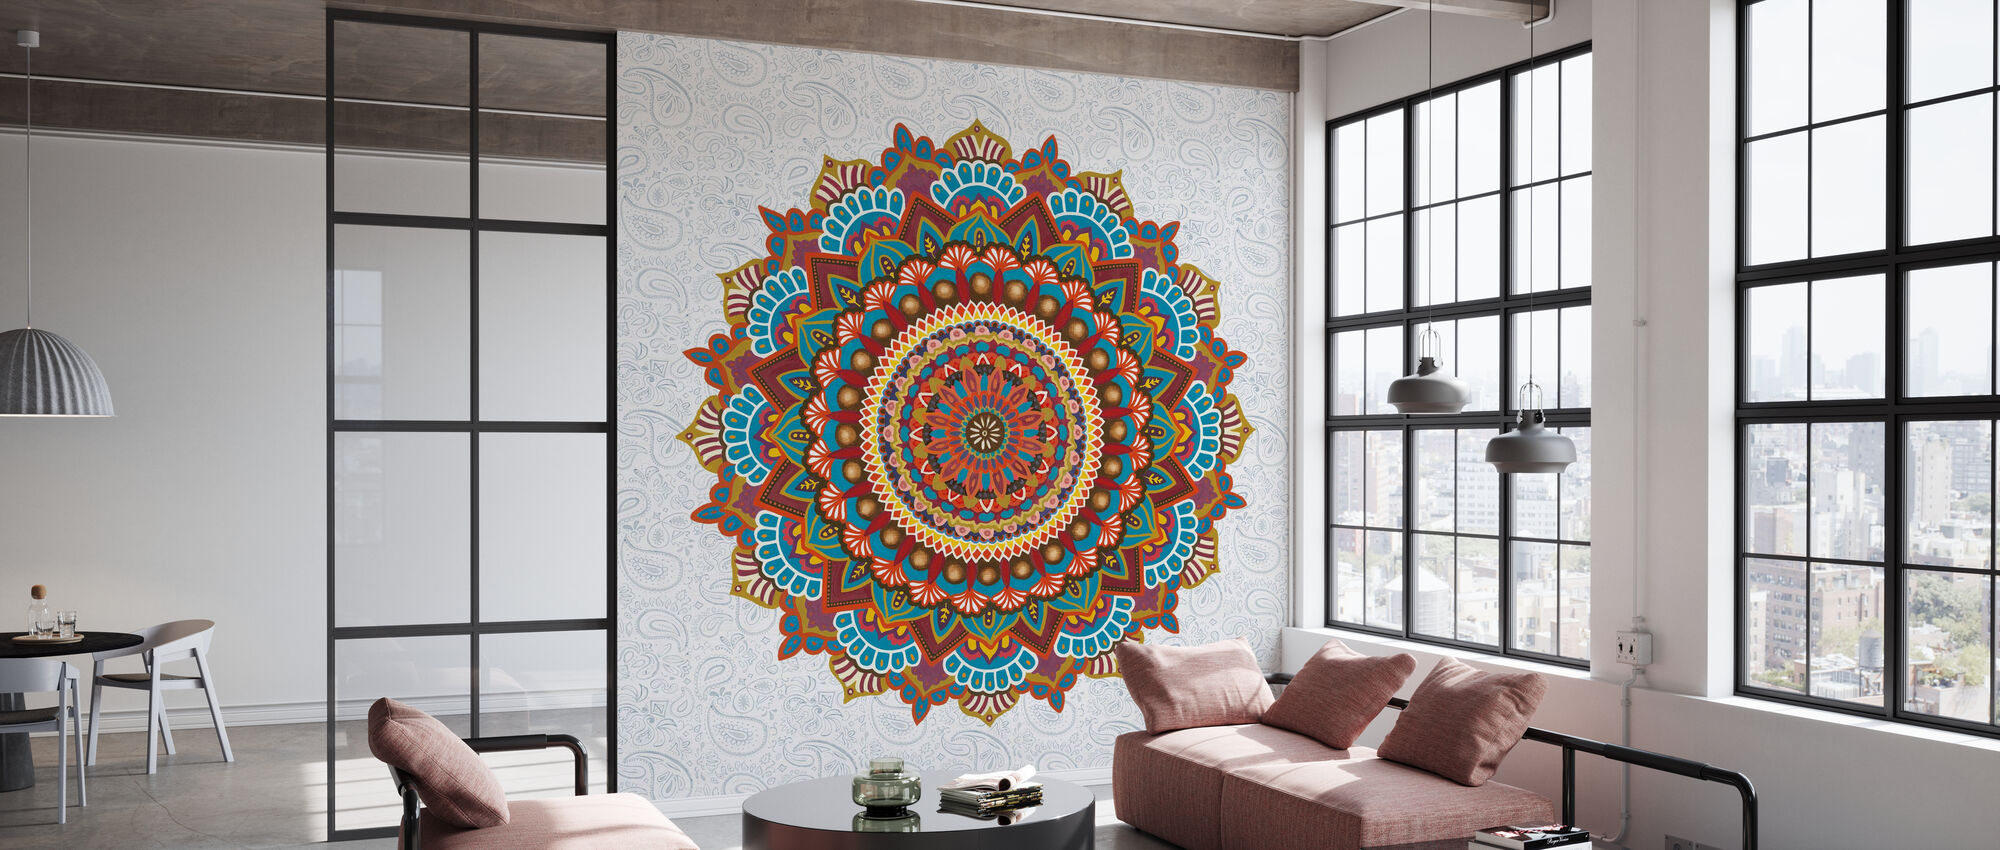 Mandala Dream - Wallpaper - Office